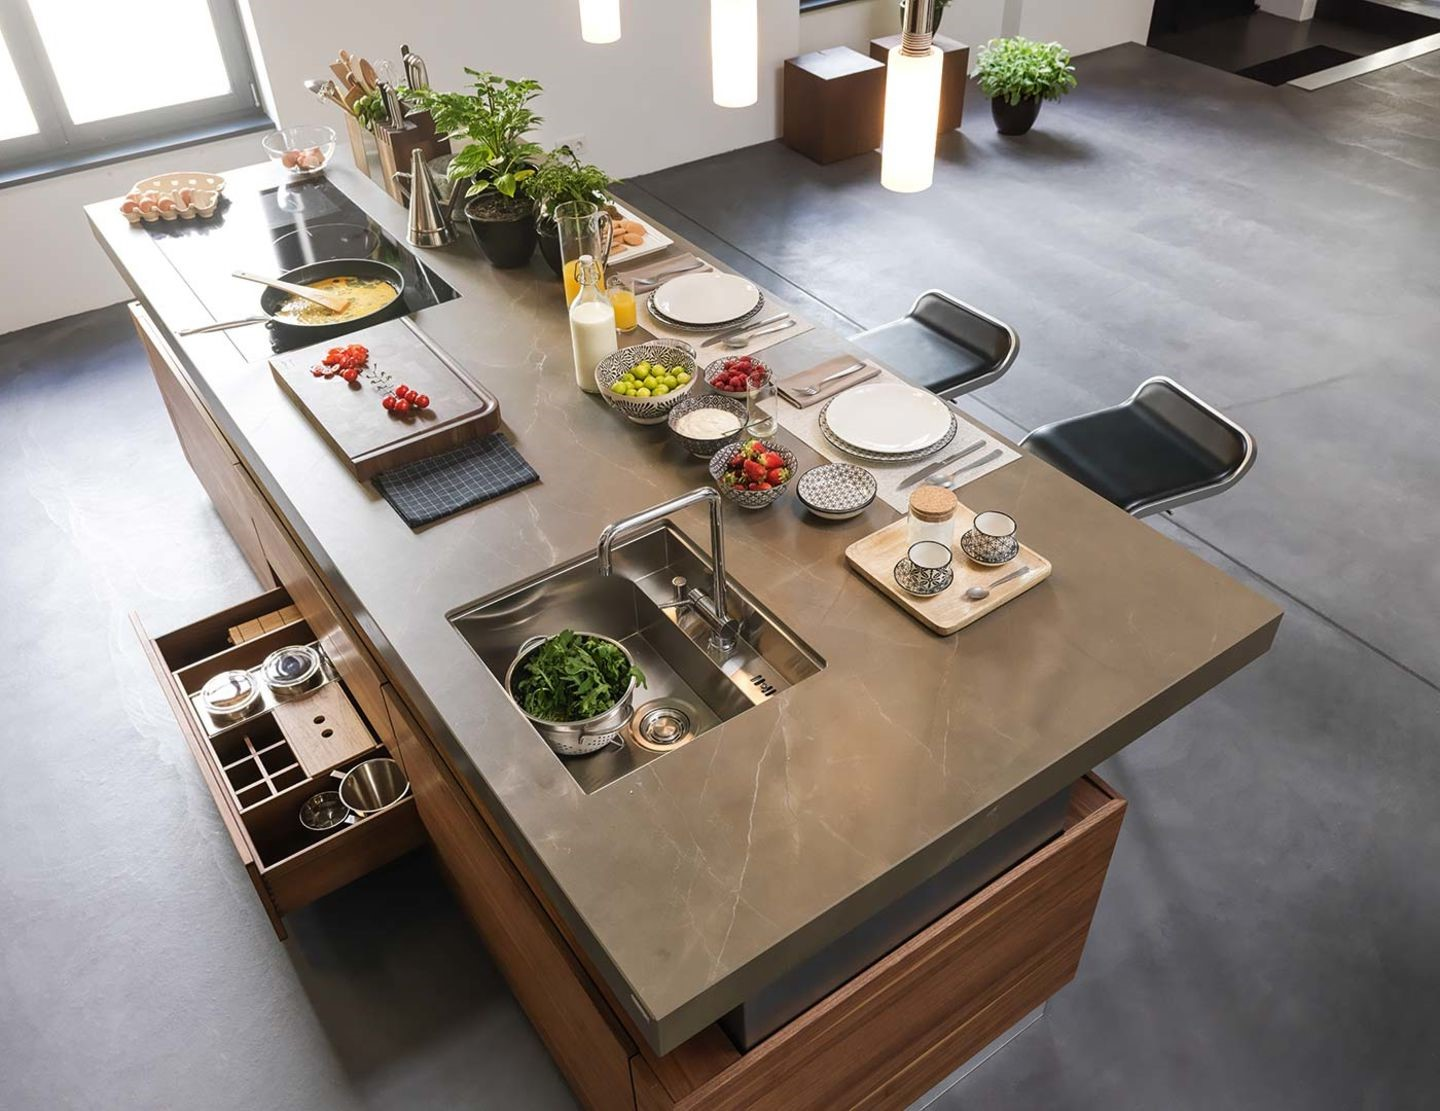 For countertops, the established standard is for the top of the countertop to fall about 36 inches above the floor.